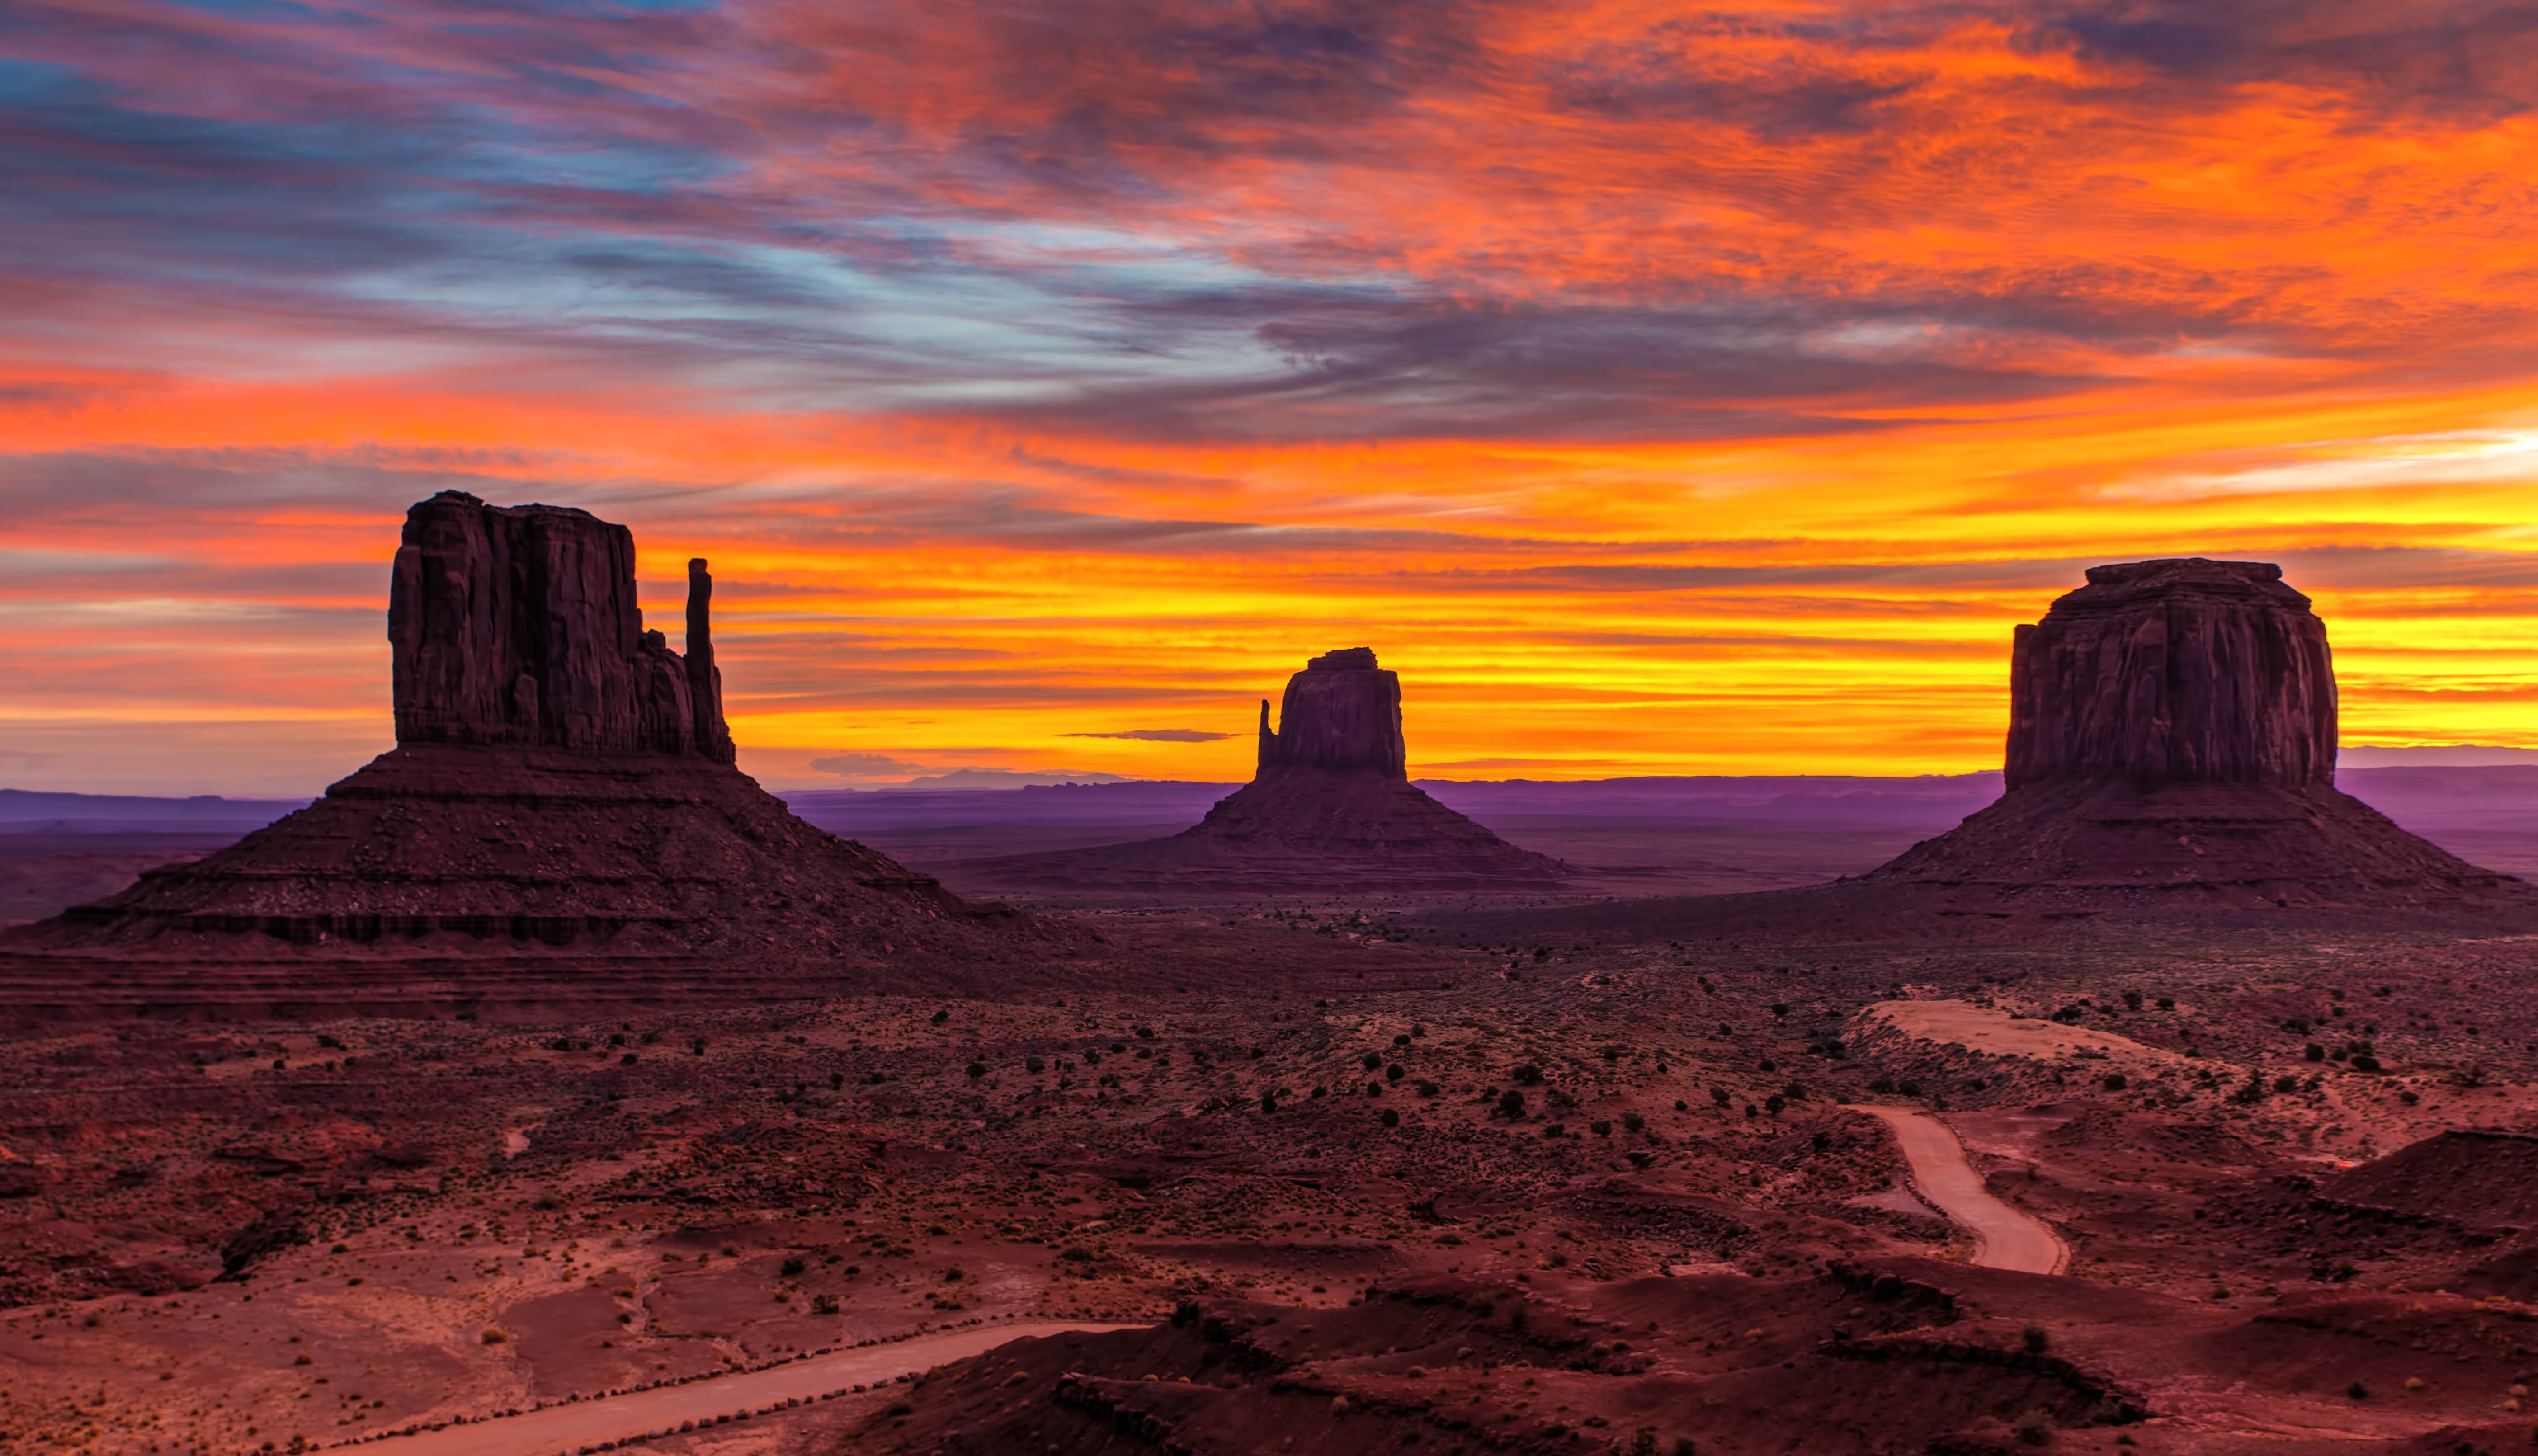 A bright orange and blue sunset covers the rock formations of Oljato-Monument Valley